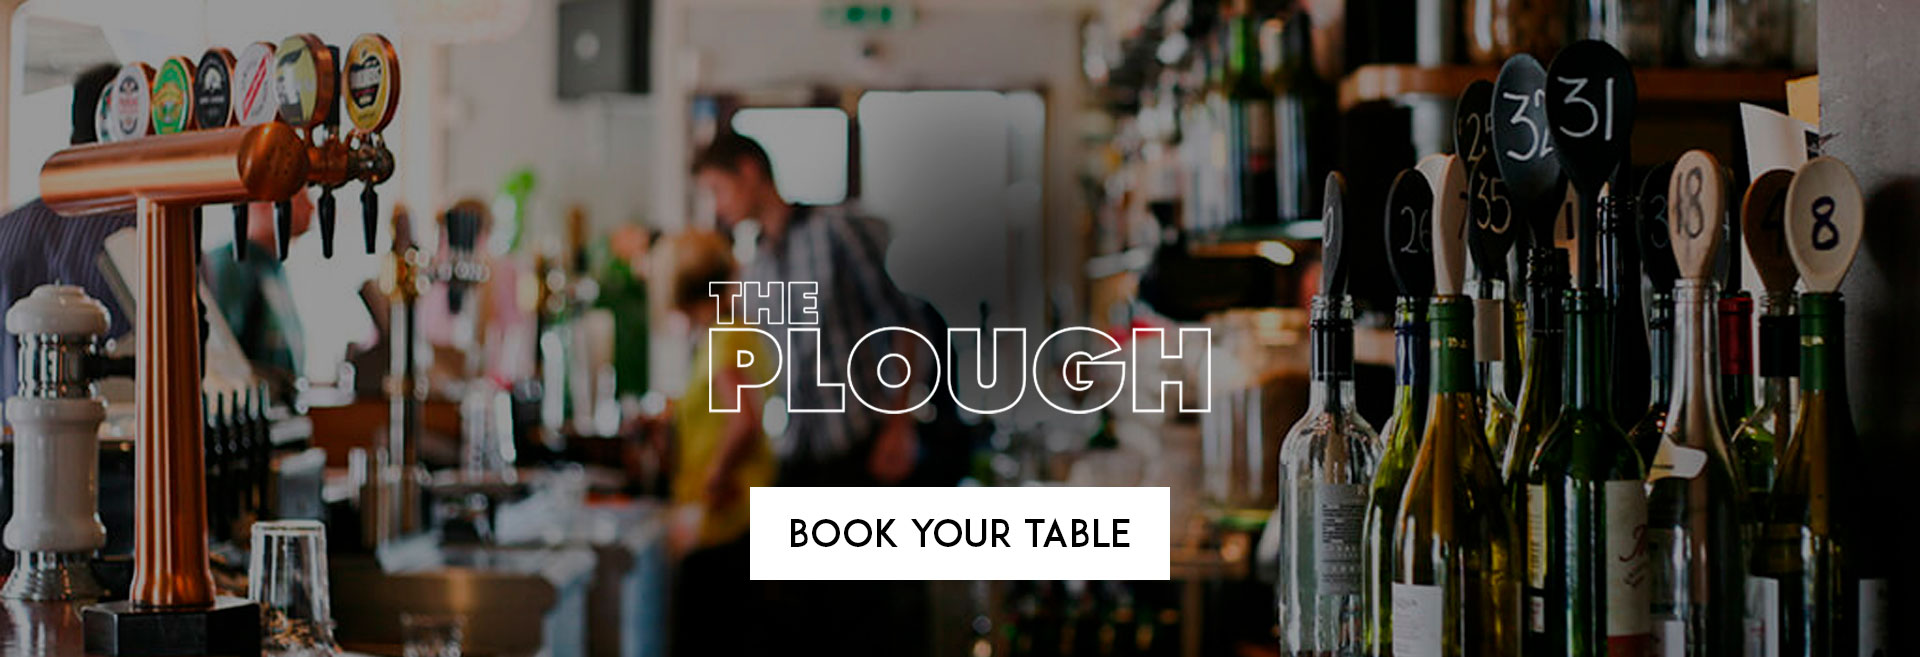 Book Your Table at The Plough